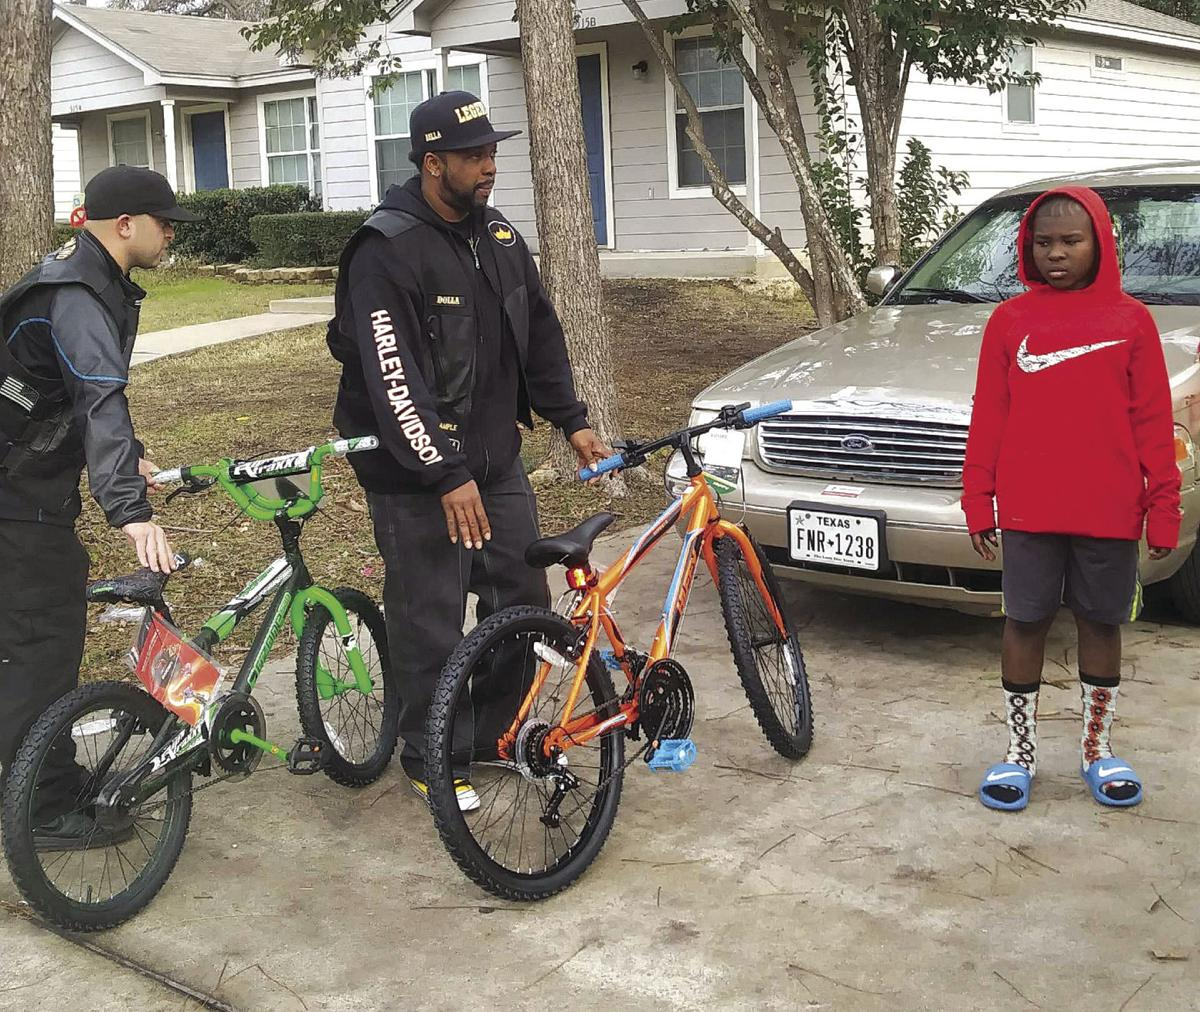 Biker club brings gifts for boys who lost mother | News | tdtnews.com